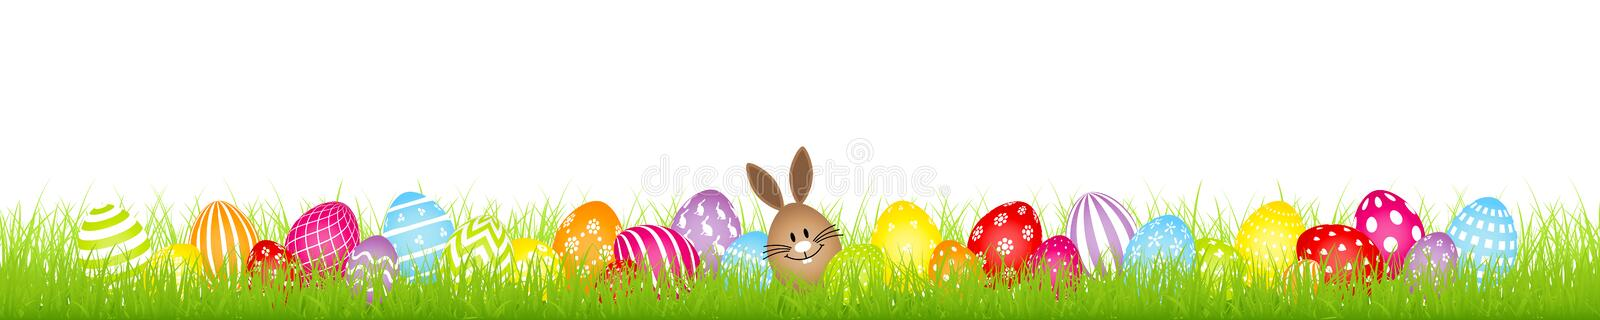 Brown Egg Bunny And Twenty Eight Colorful Easter Eggs Meadow Banner royalty free illustration